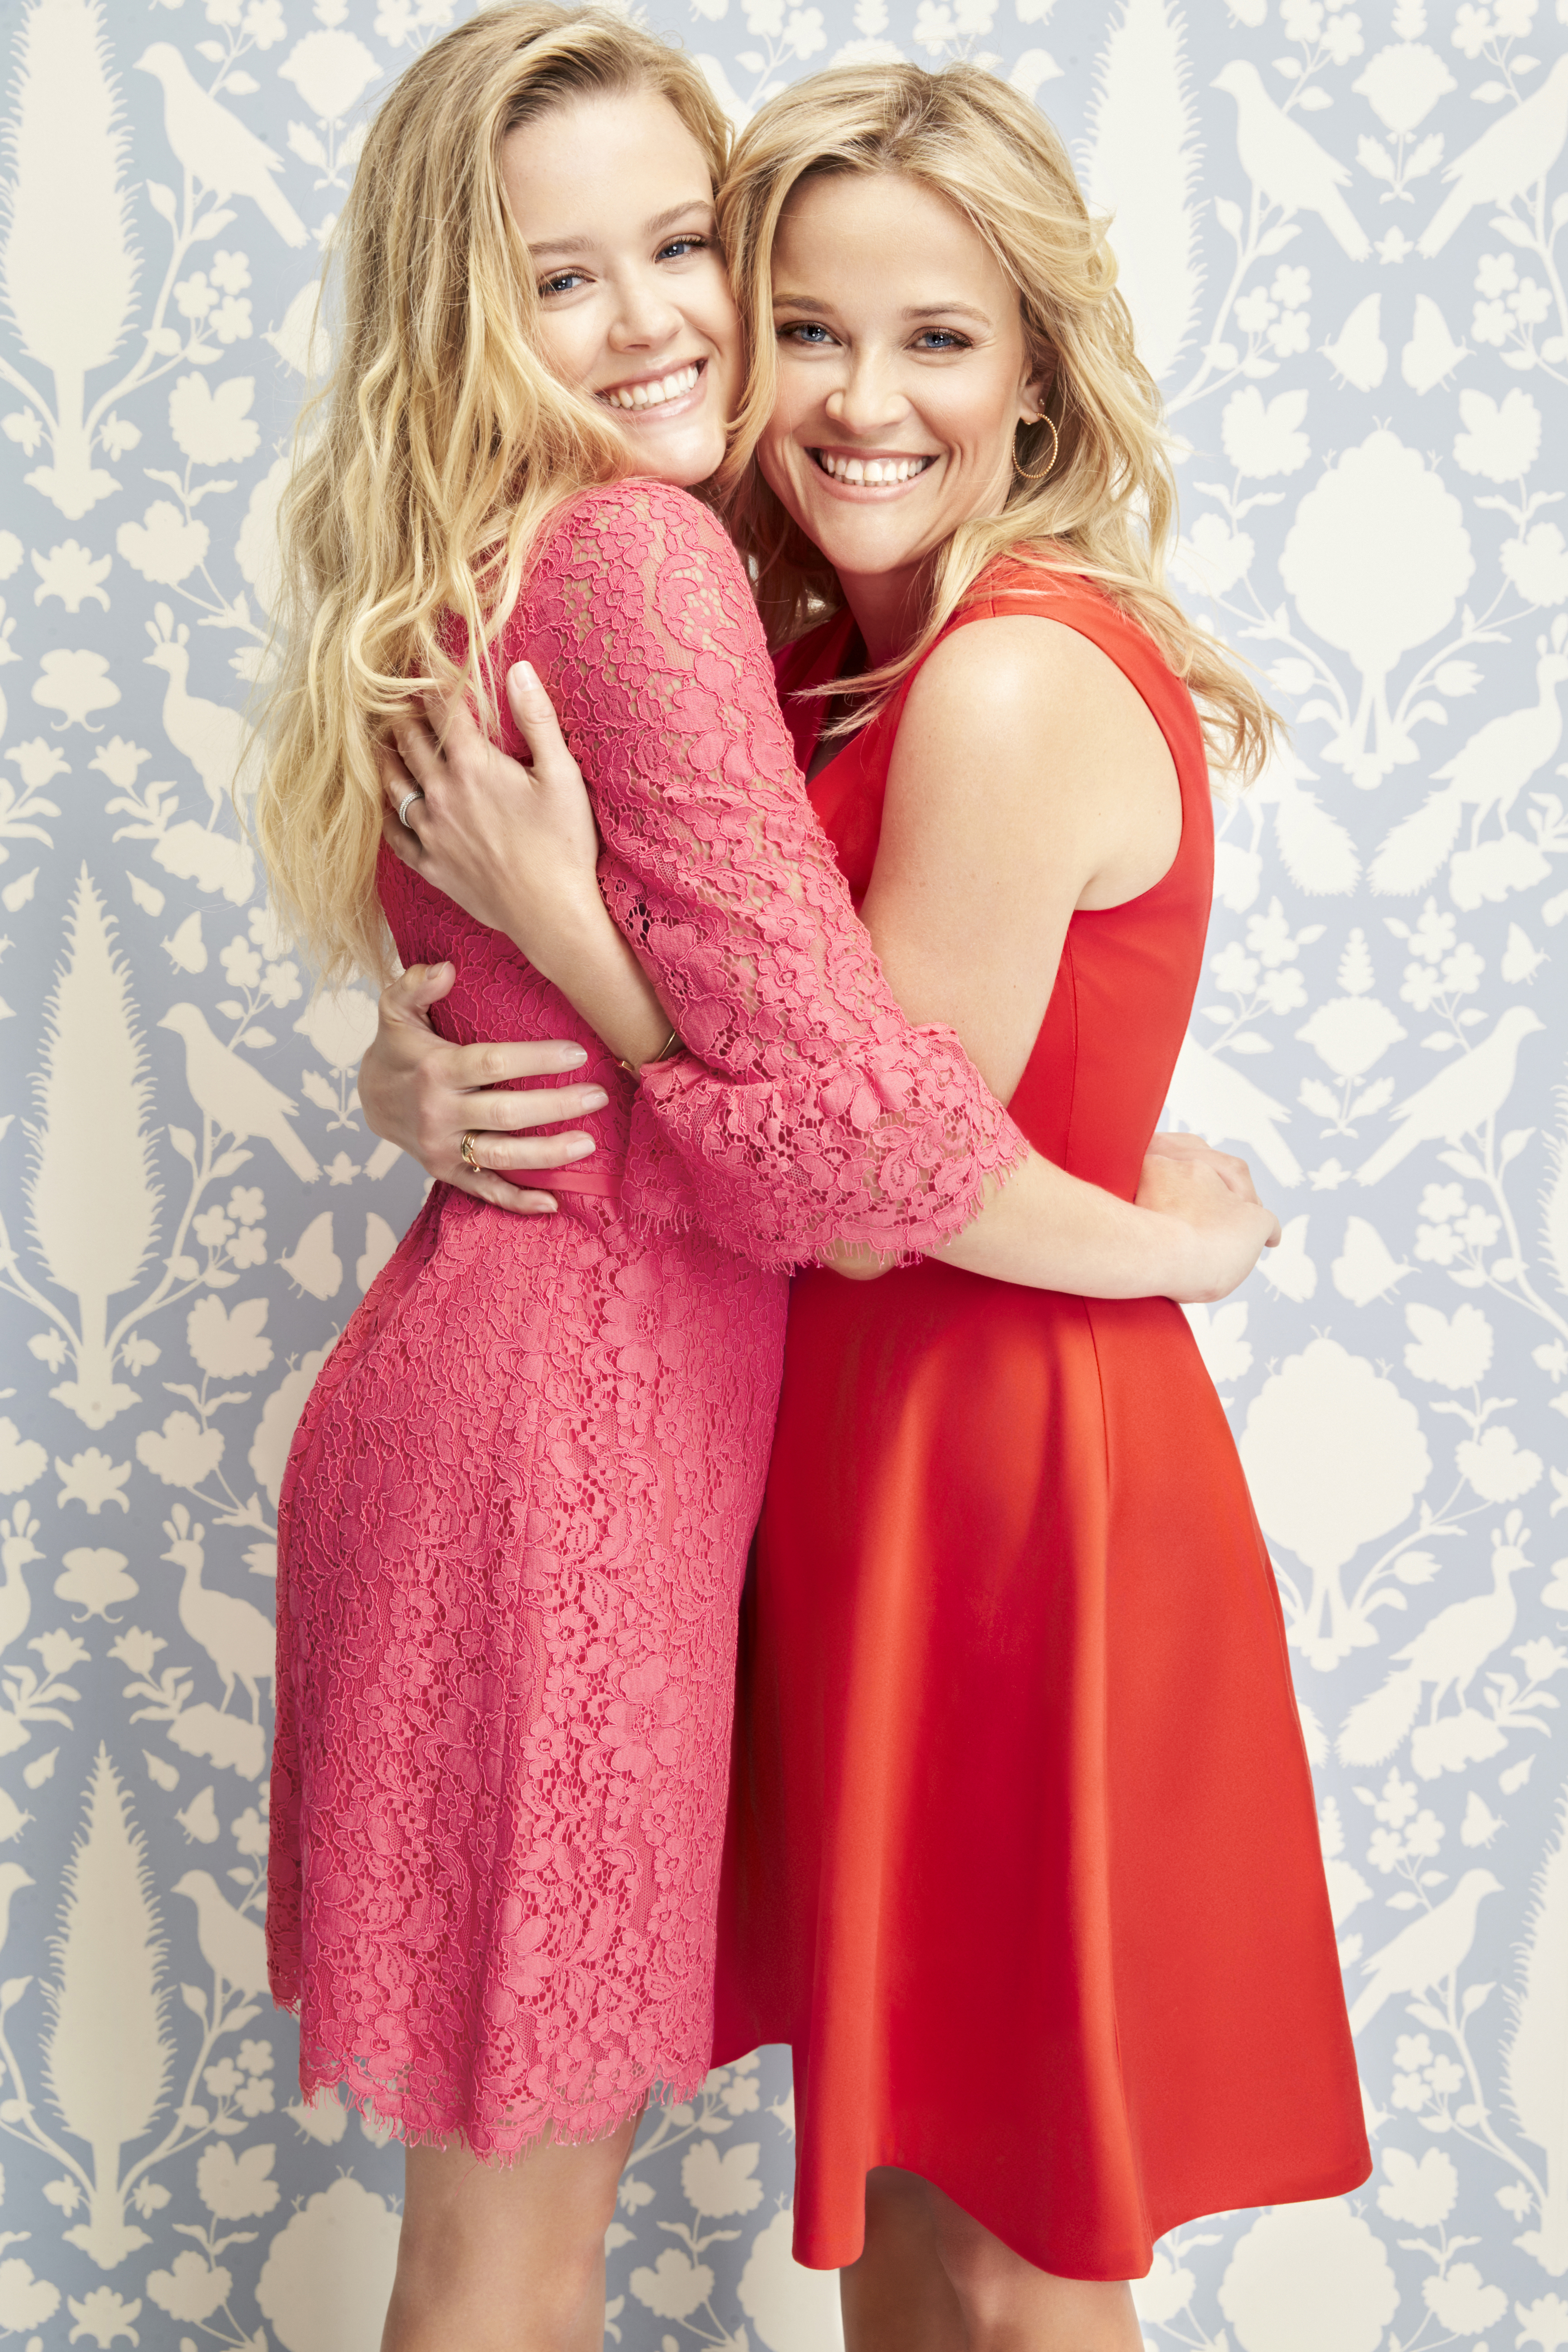 reese witherspoon ava phillippe interview